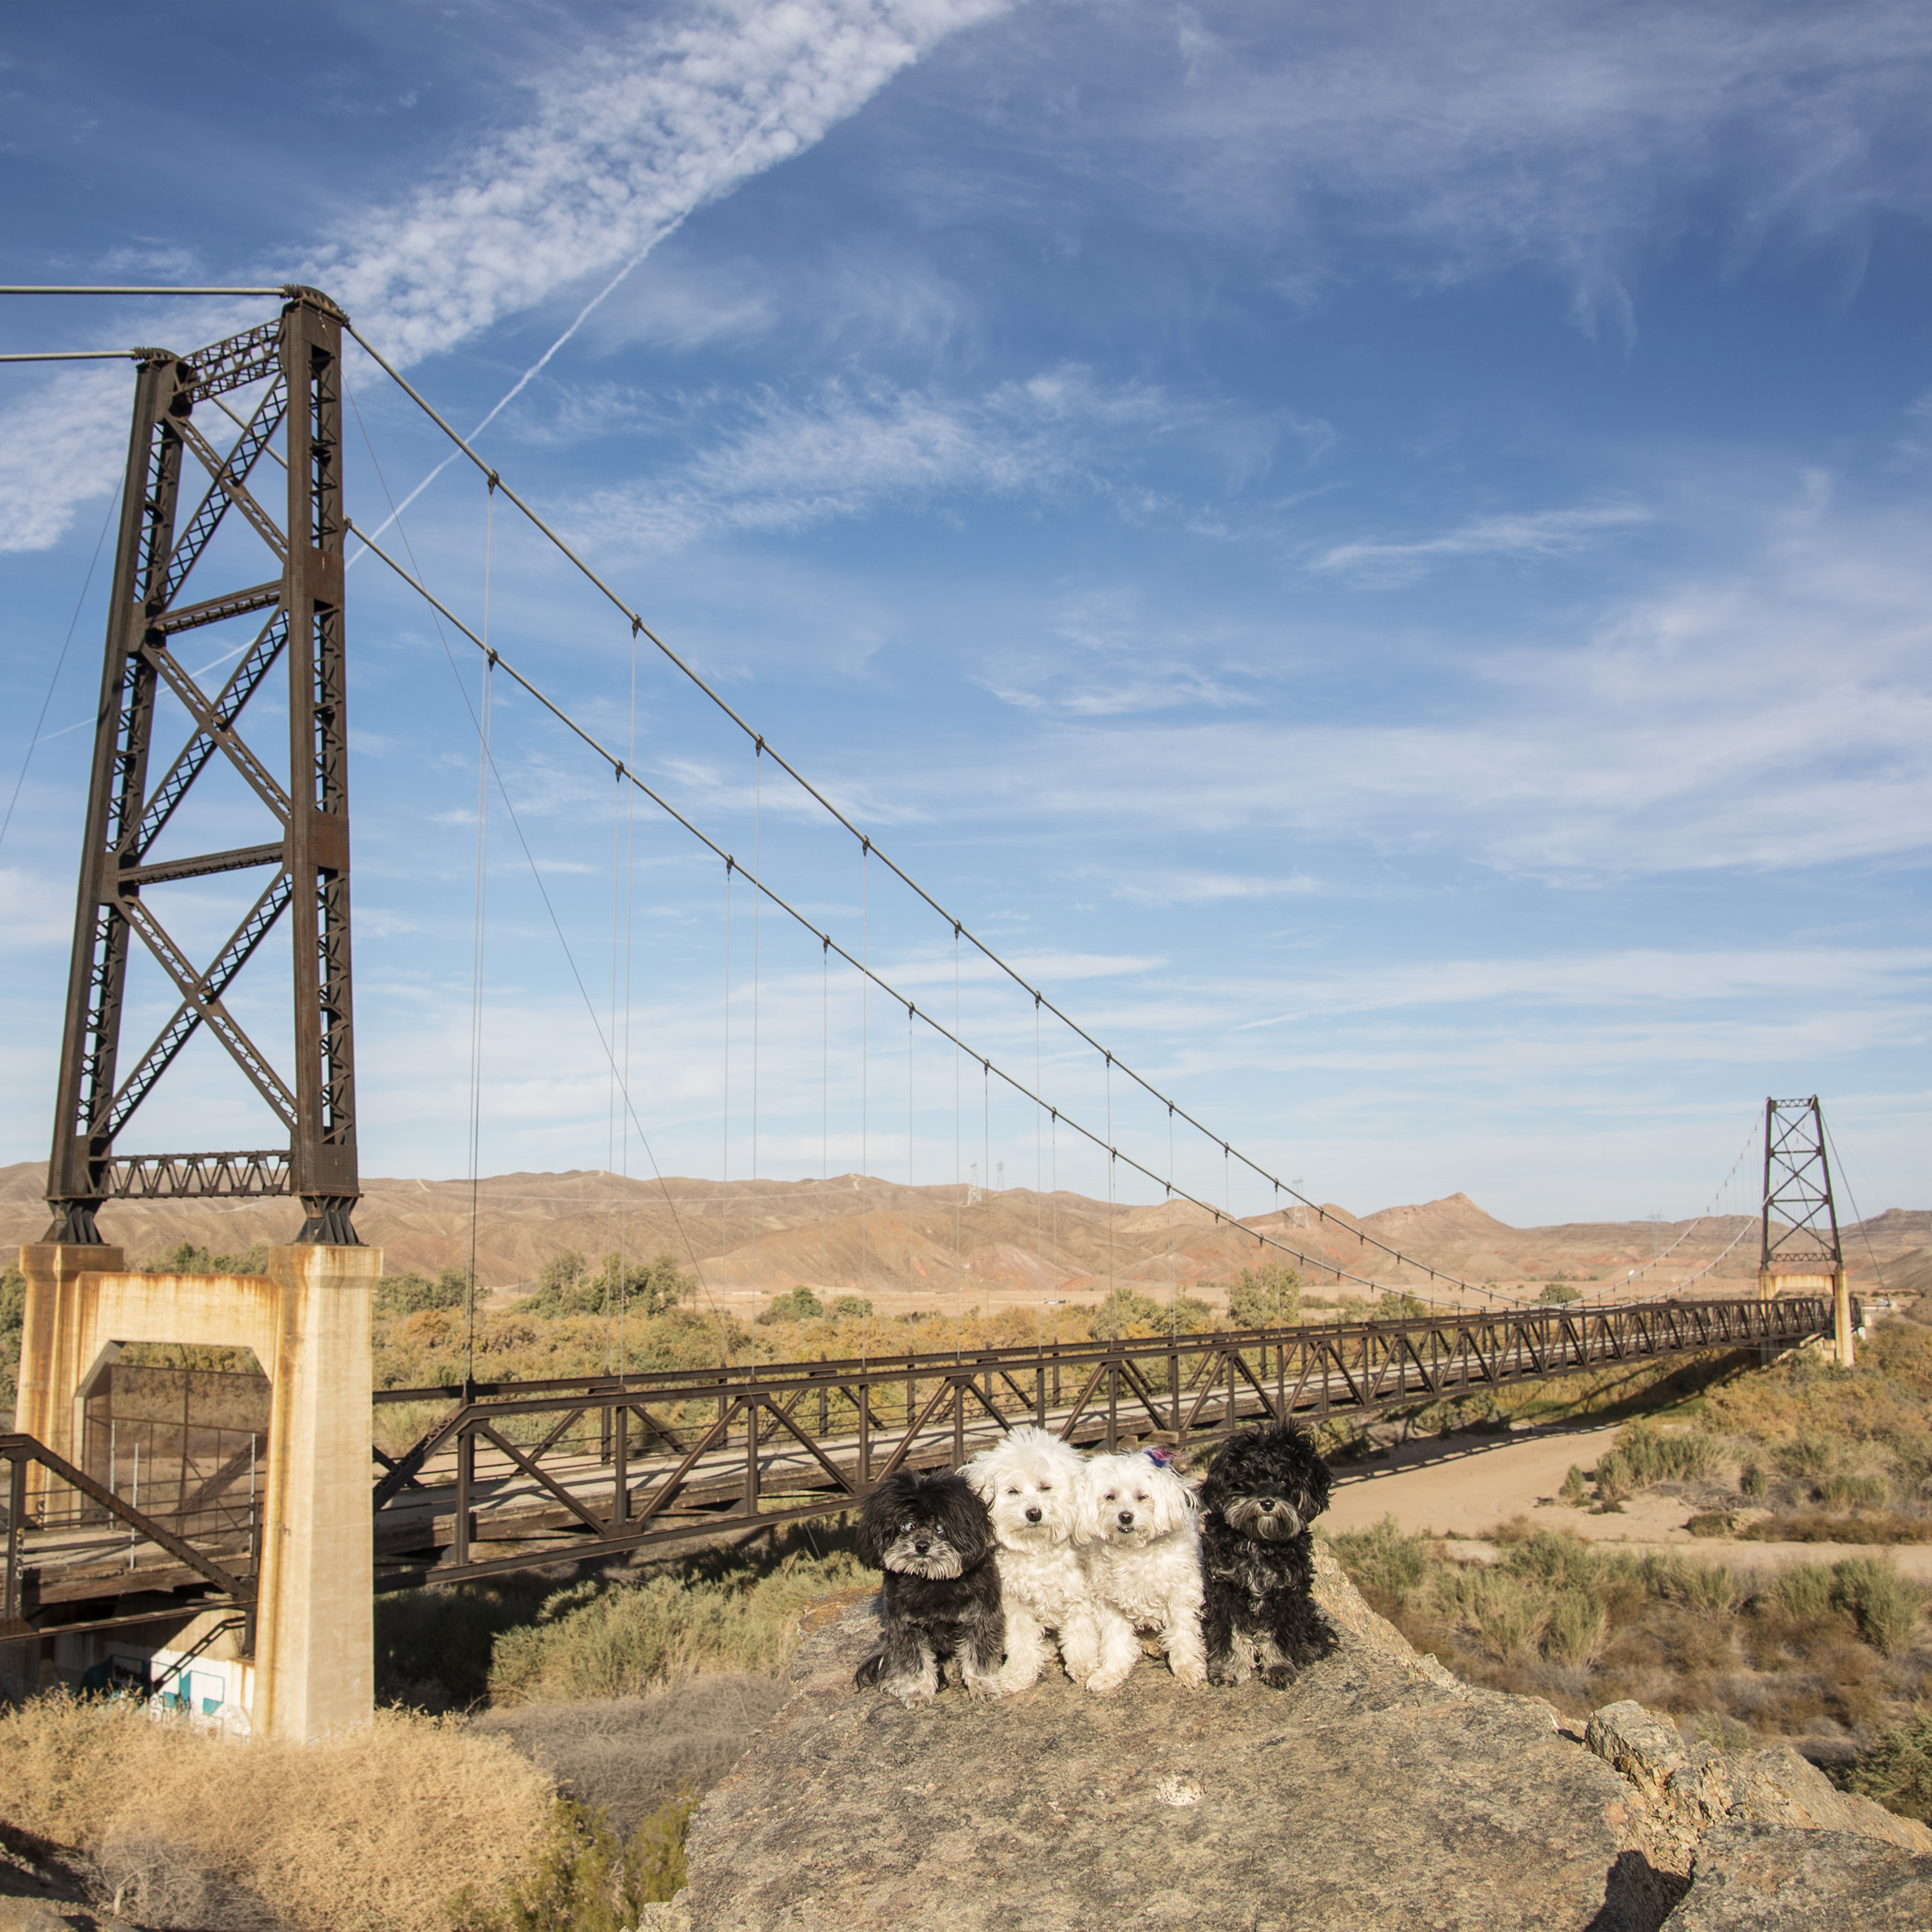 Then, of course, there's always the ridiculous stops that Mom makes us do. Like this one,The Bridge to Nowhere, also in Yuma, AZ. This is an amazing bridge and it literally goes nowhere!